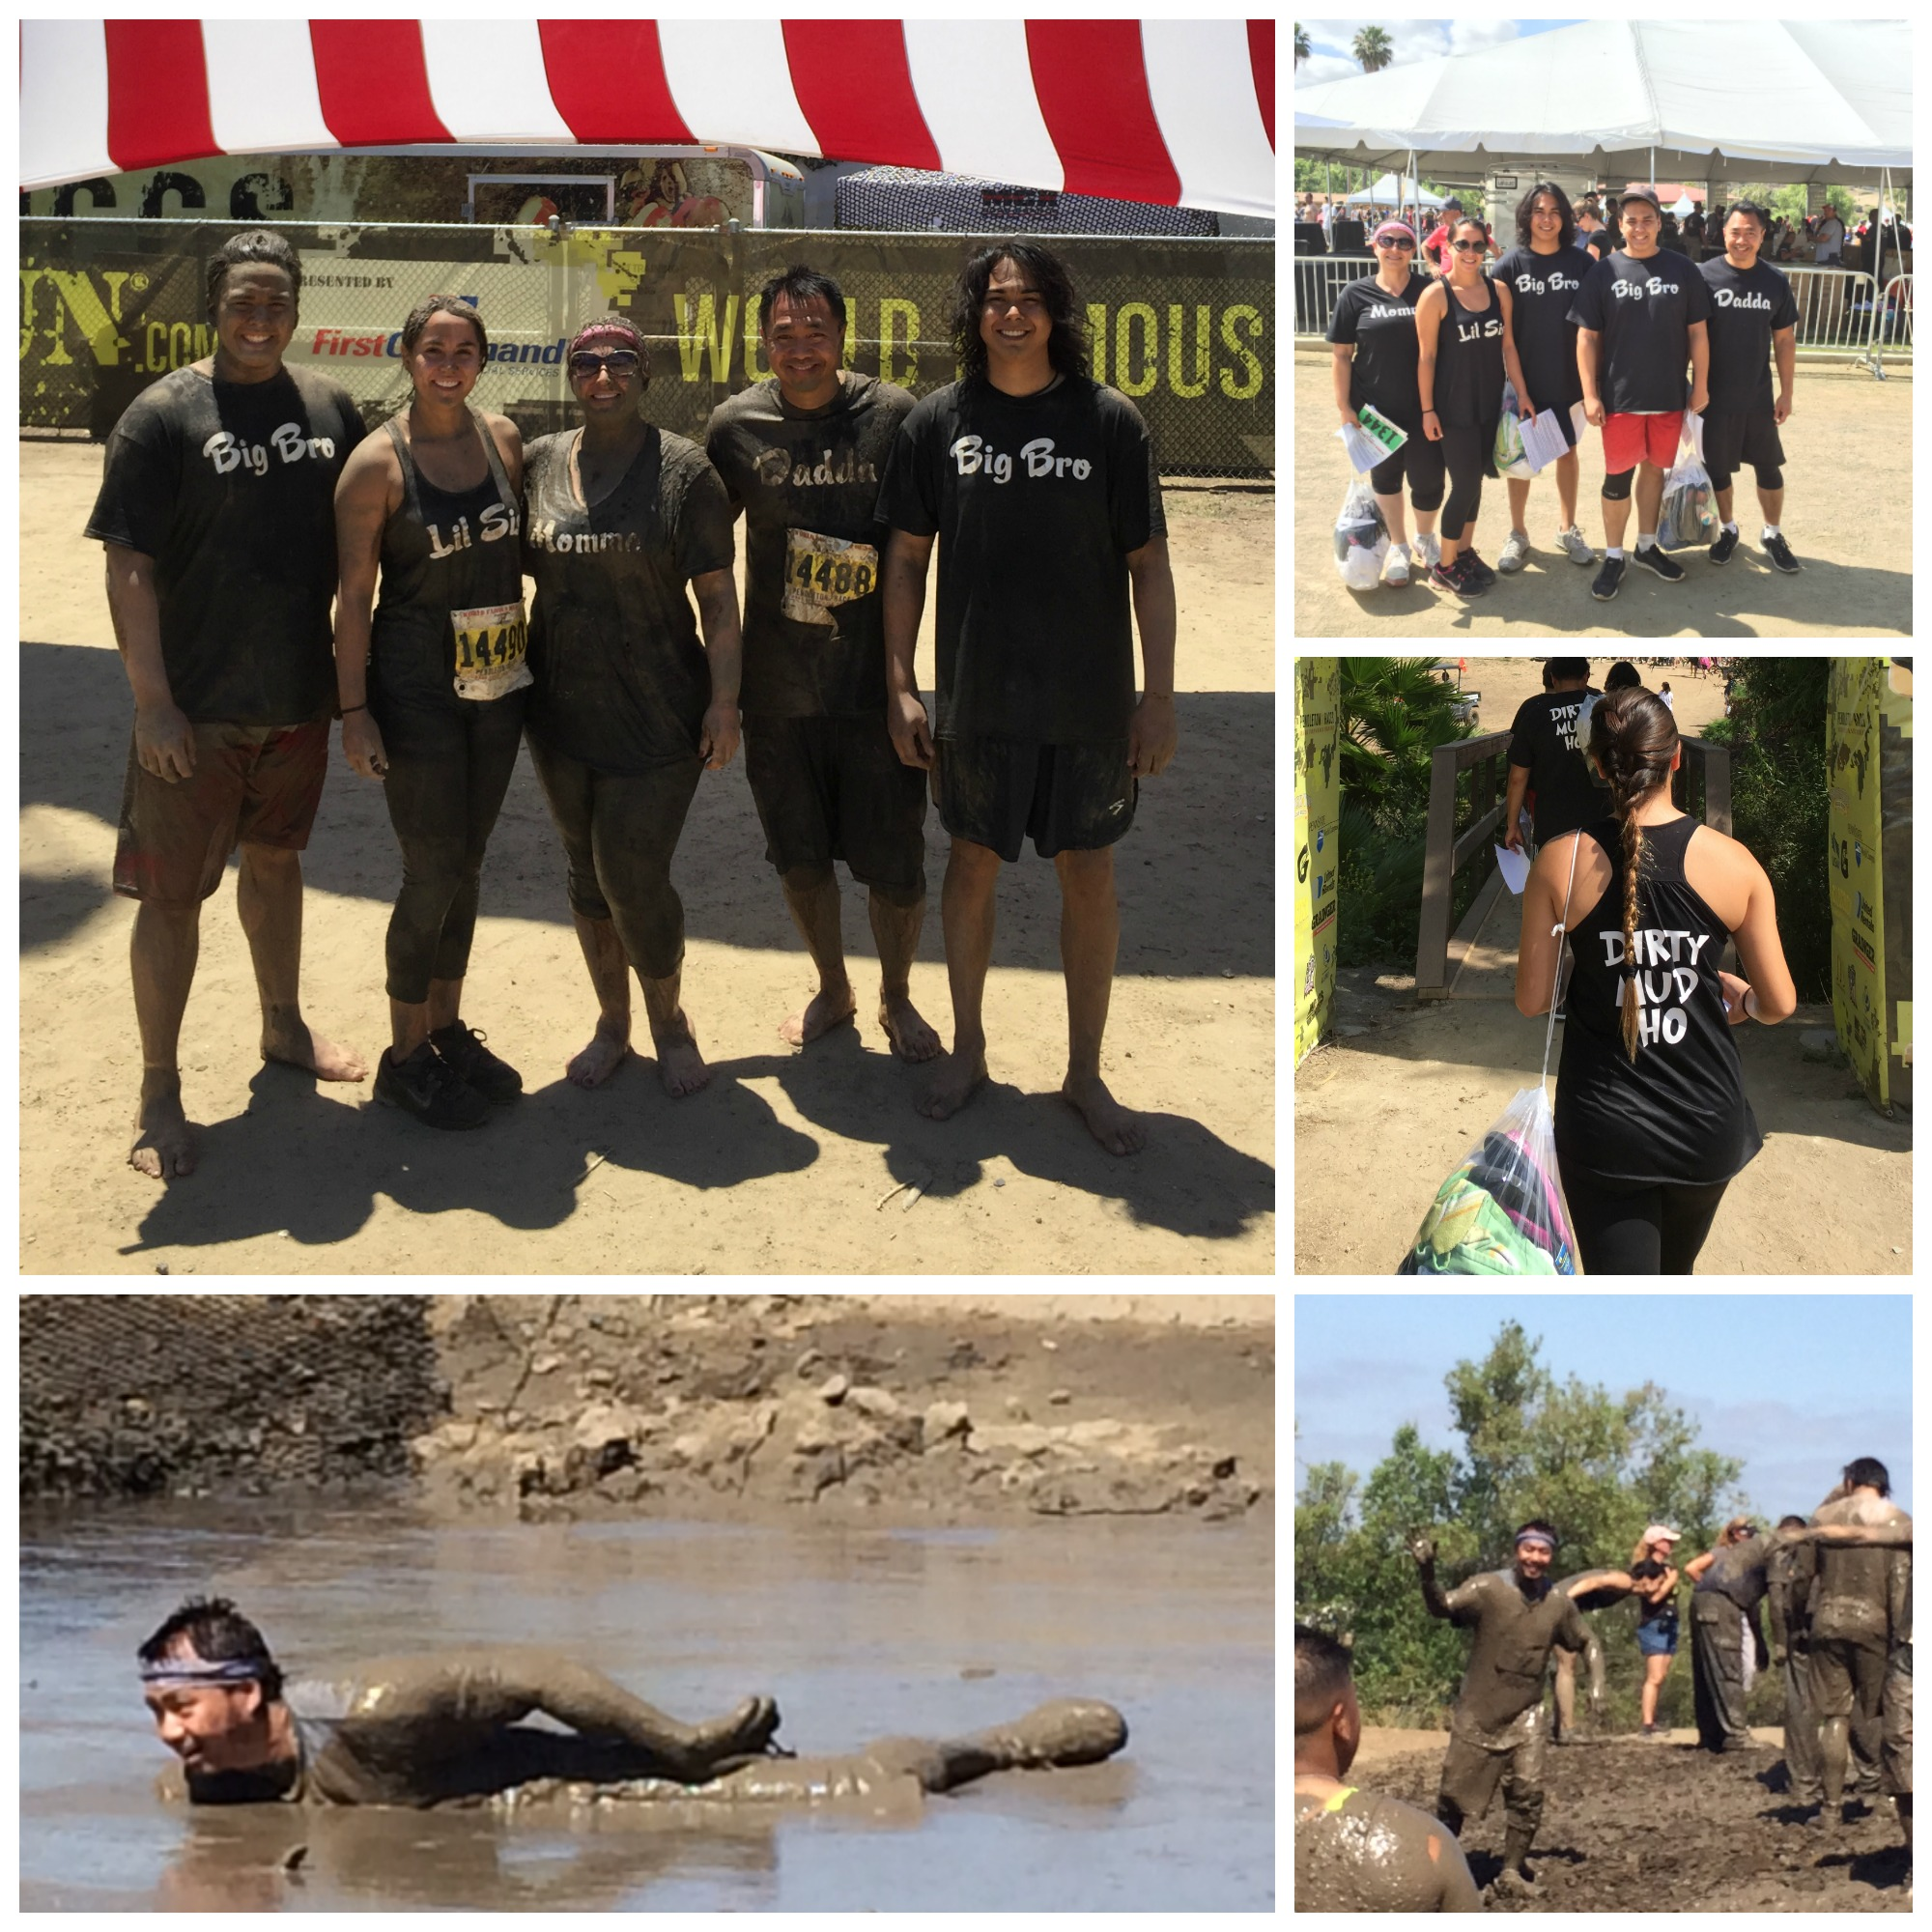 Camp Pendleton Mud Run. A fun adventure for the whole Ho family.